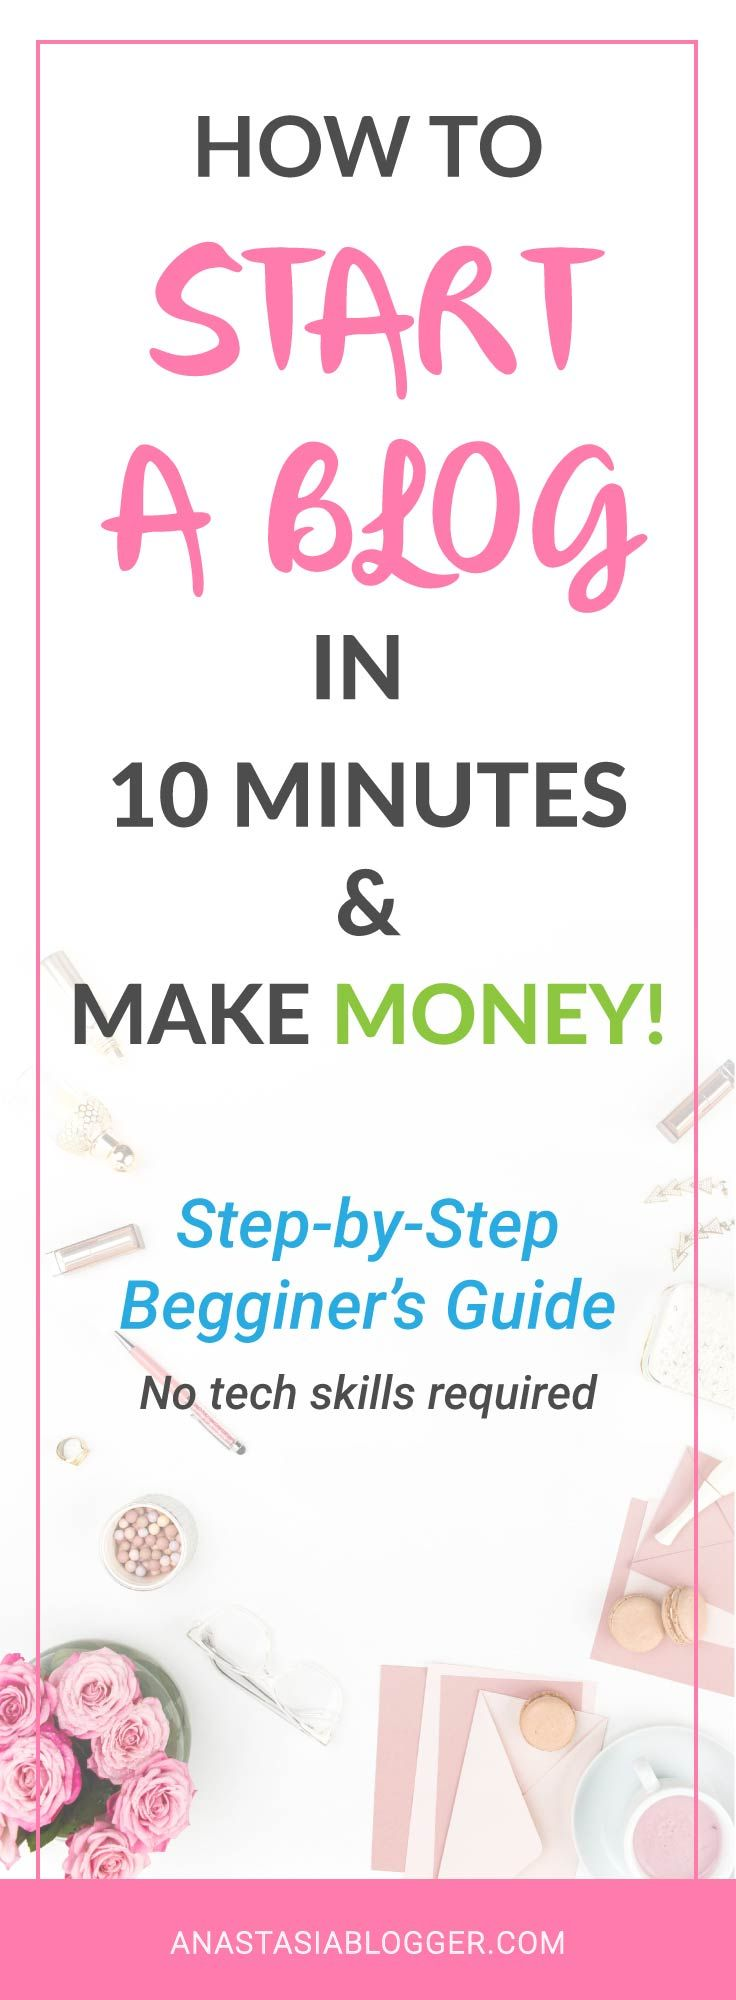 How to Start a Blog in 10 minutes: a Step-by-Step Guide for Beginners. Start your blog and make money online! How to create a blog? Get a tutorial on how to buy a domain name, register hosting and have your blog online in just 10 minutes! Blogging 101, bl